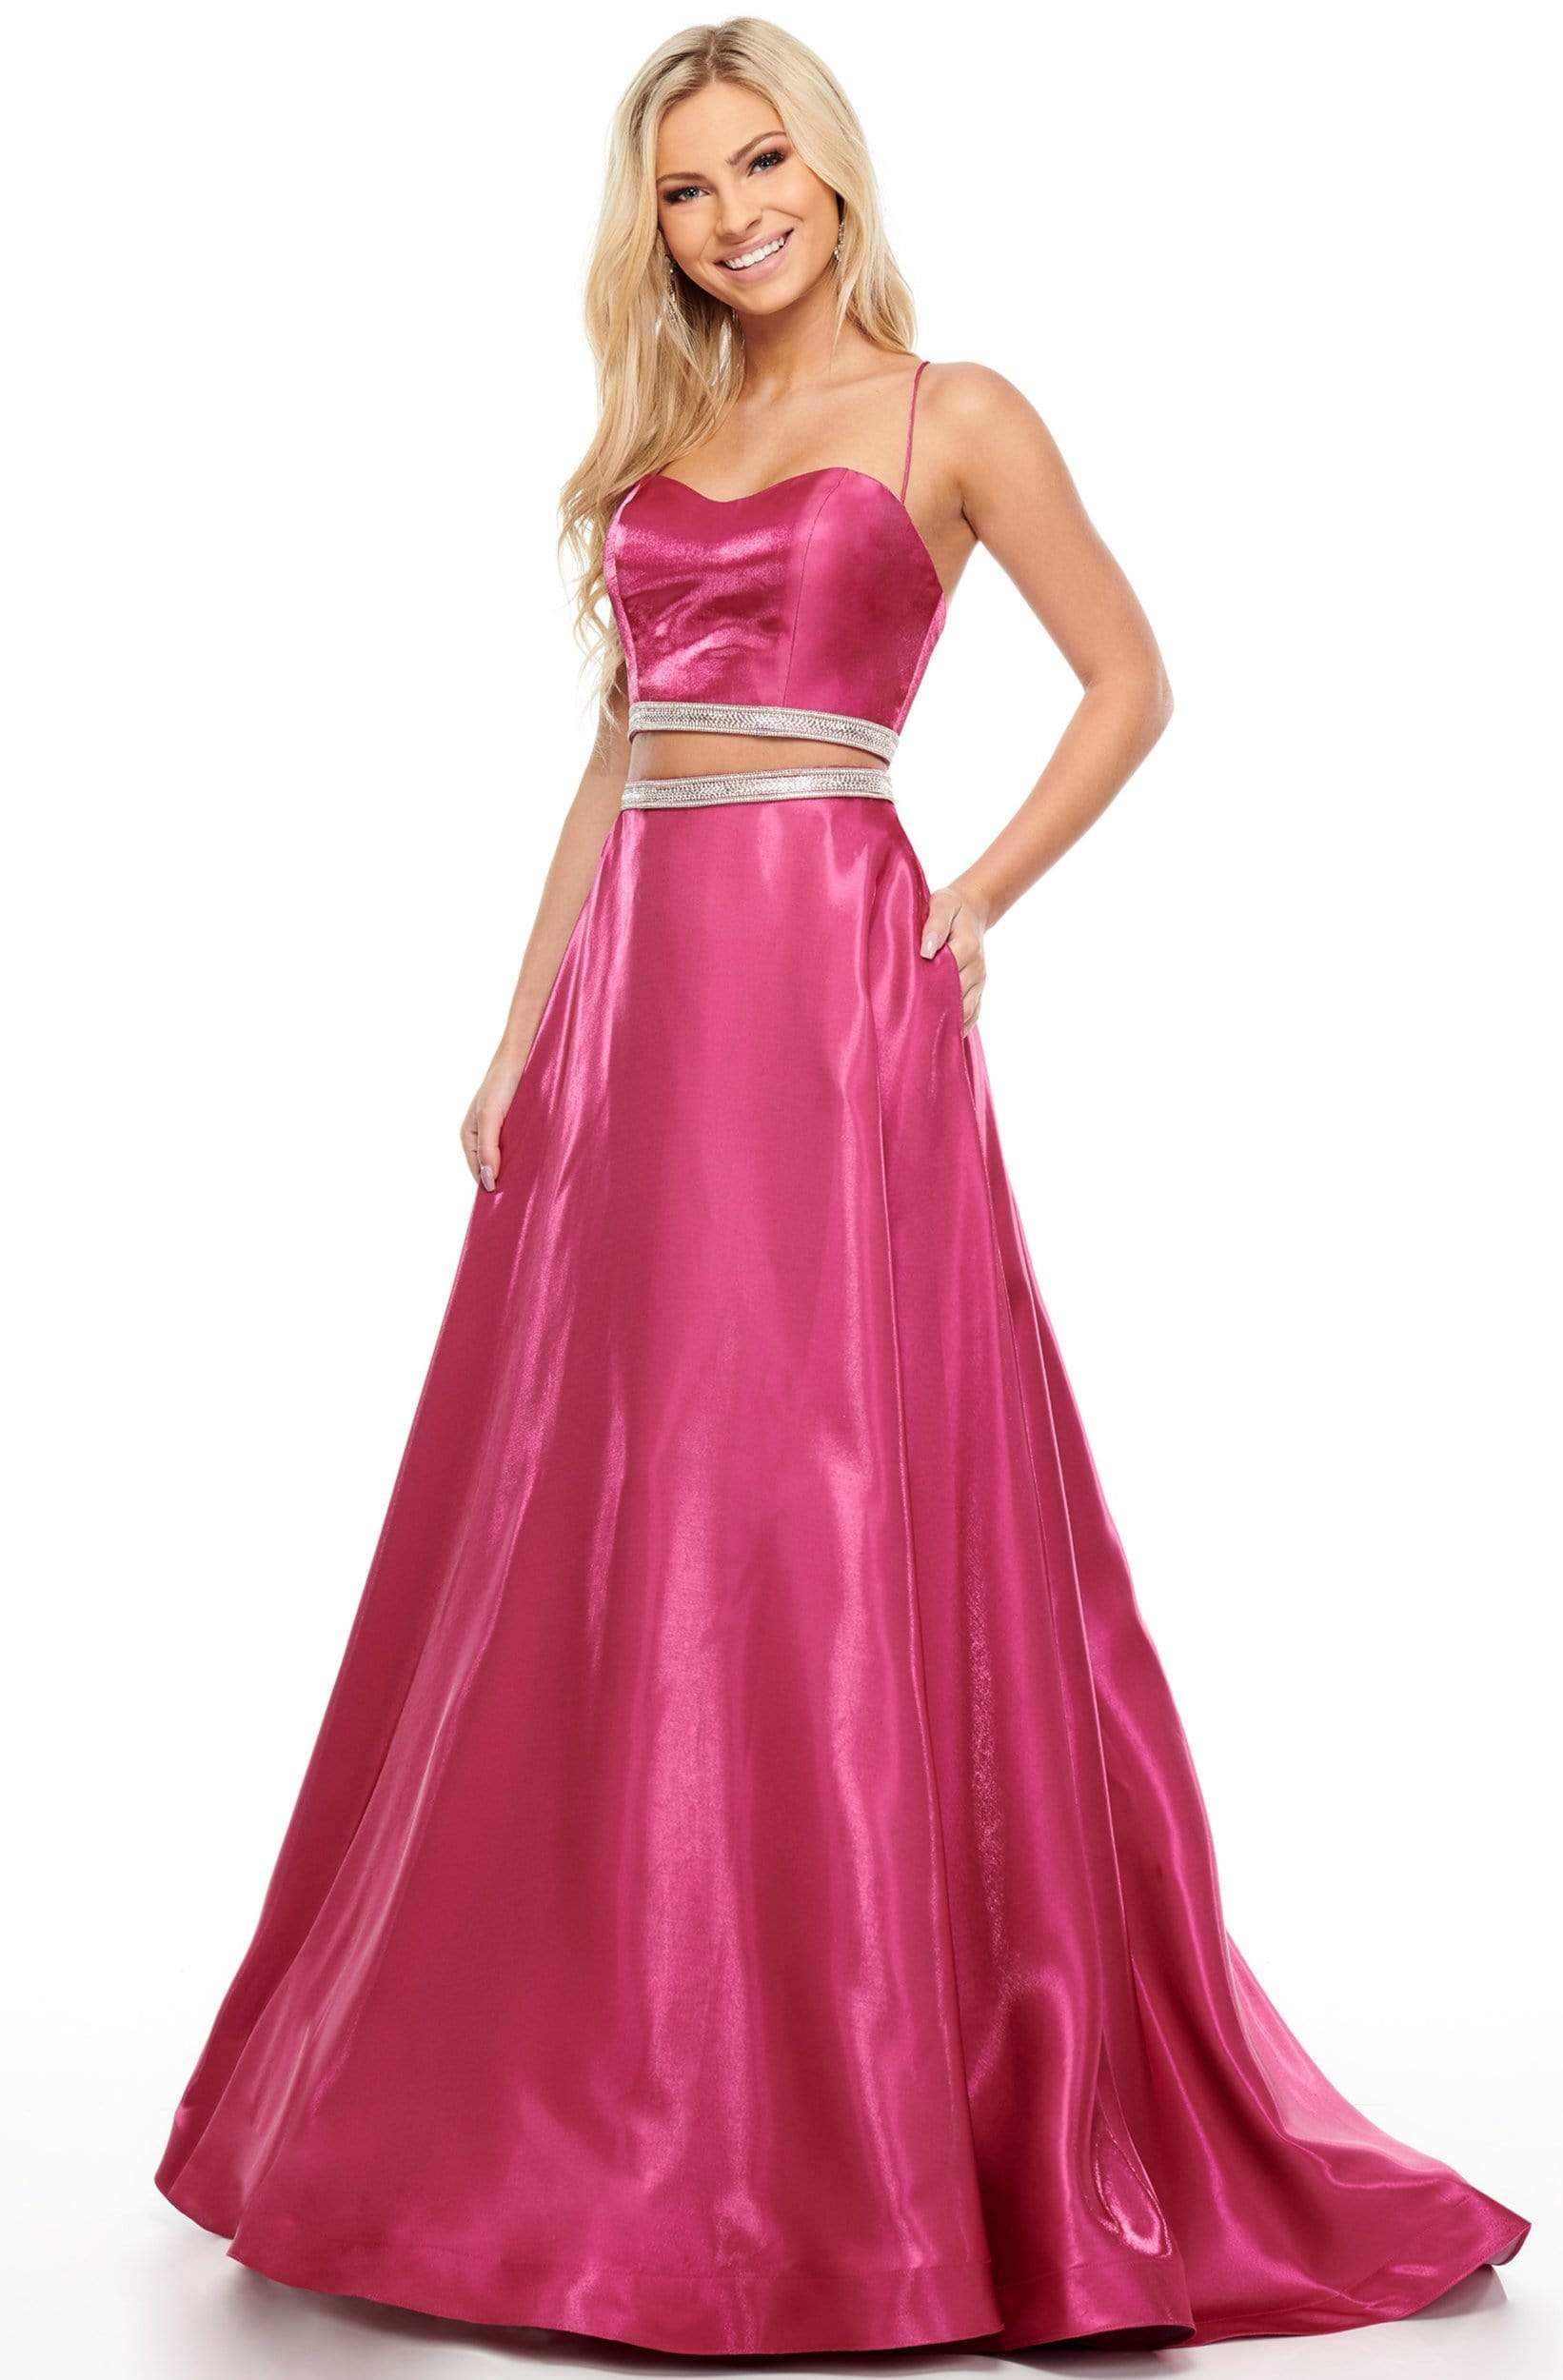 Rachel Allan Prom - 7106 Two Piece Beaded Satin A-Line Dress from Rachel Allan